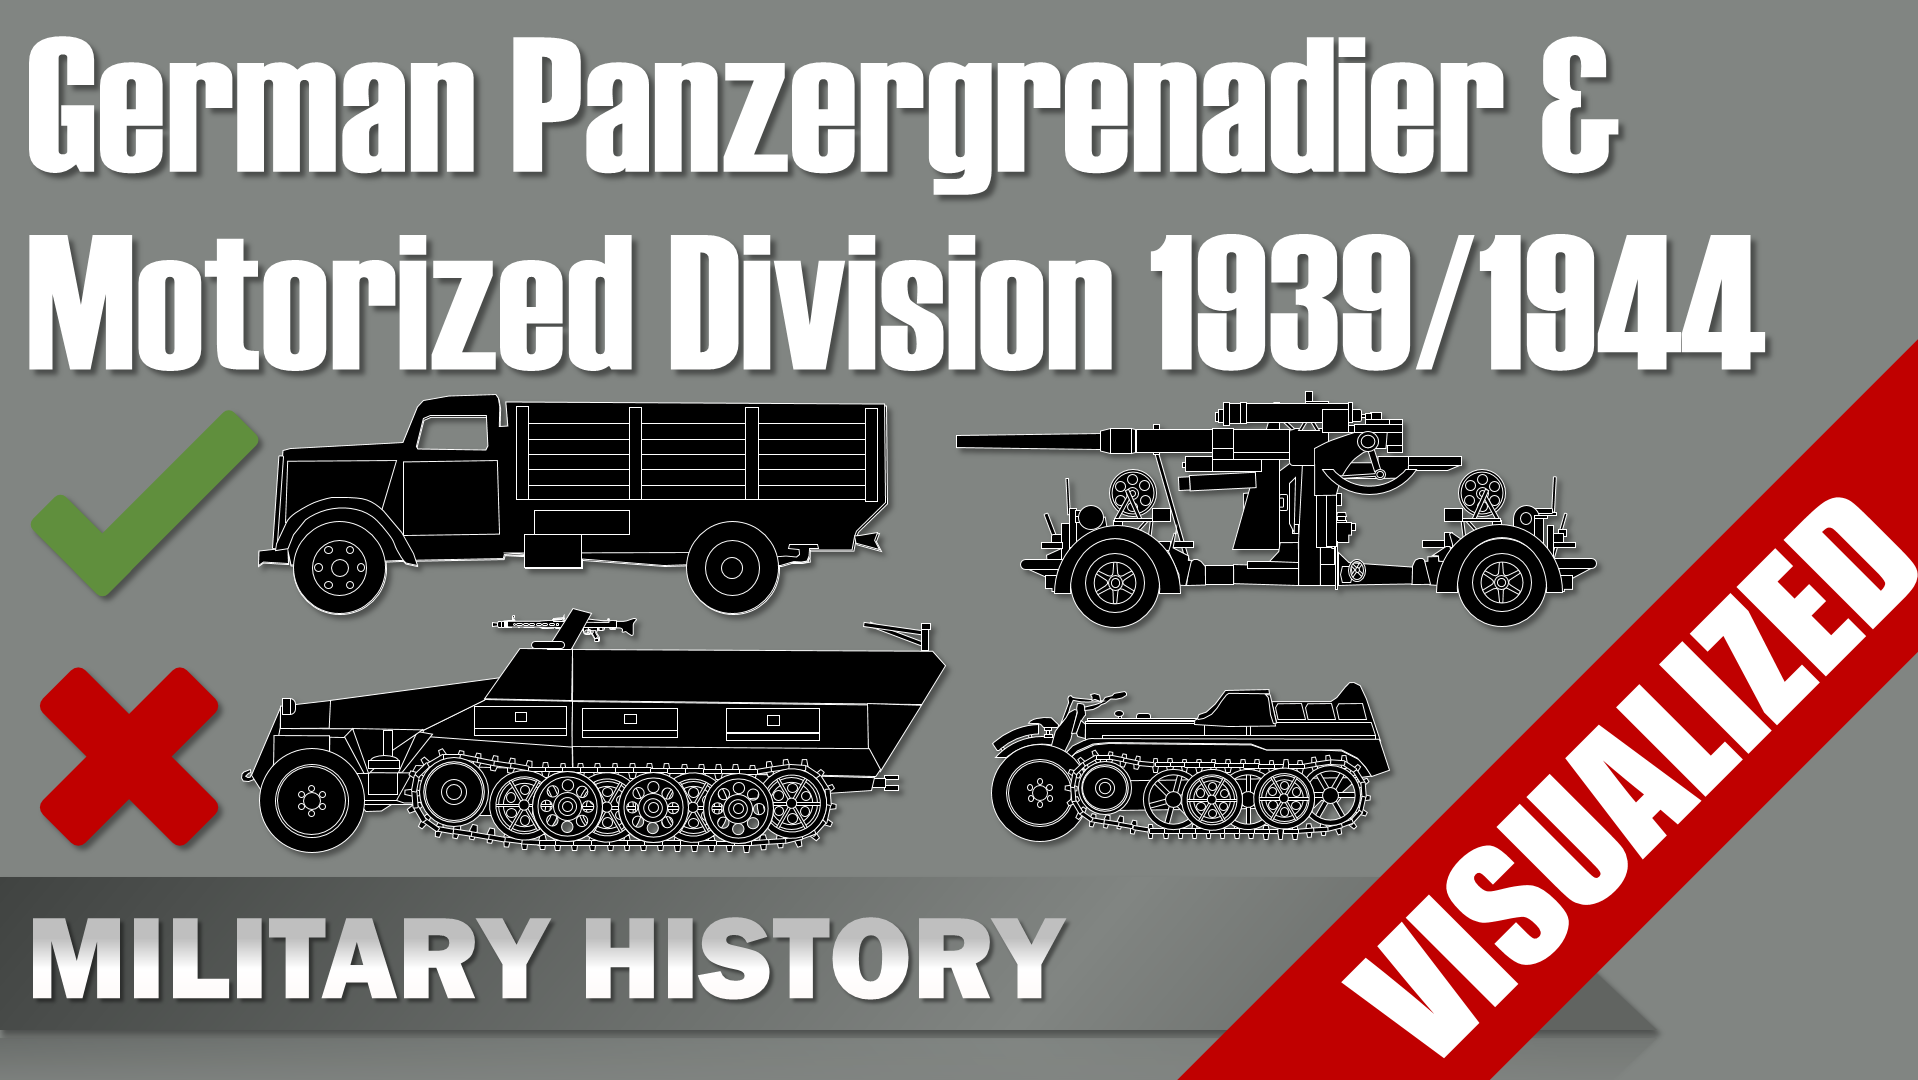 Panzergrenadier Division 1944 Motorized Infantry Divsion 1939